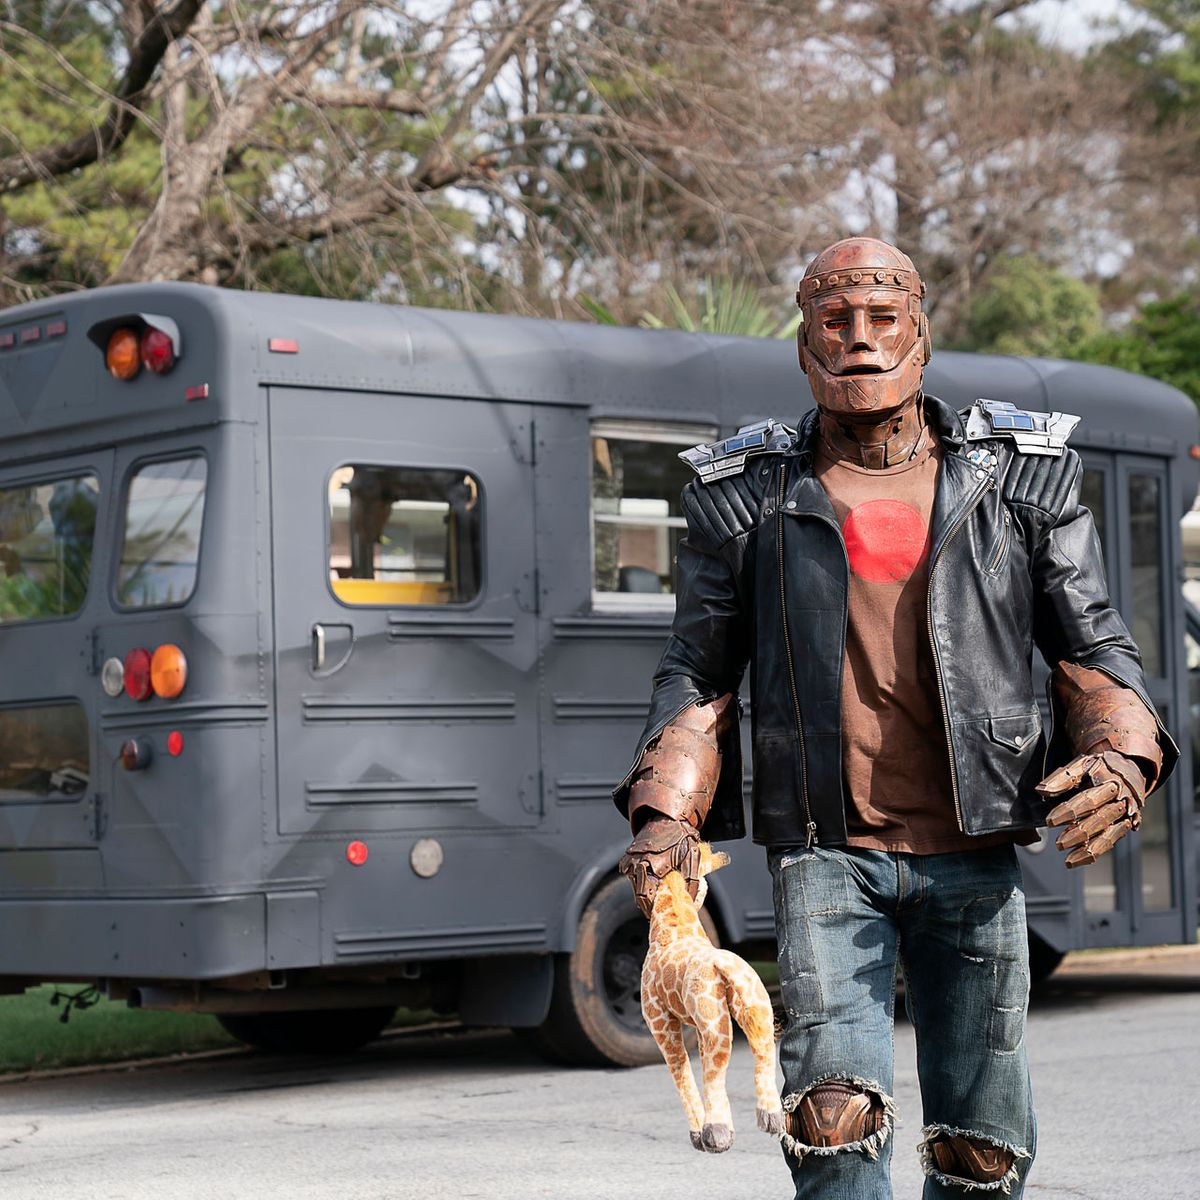 Doom Patrol Season 2 Episode 3 Recap Pain Patrol